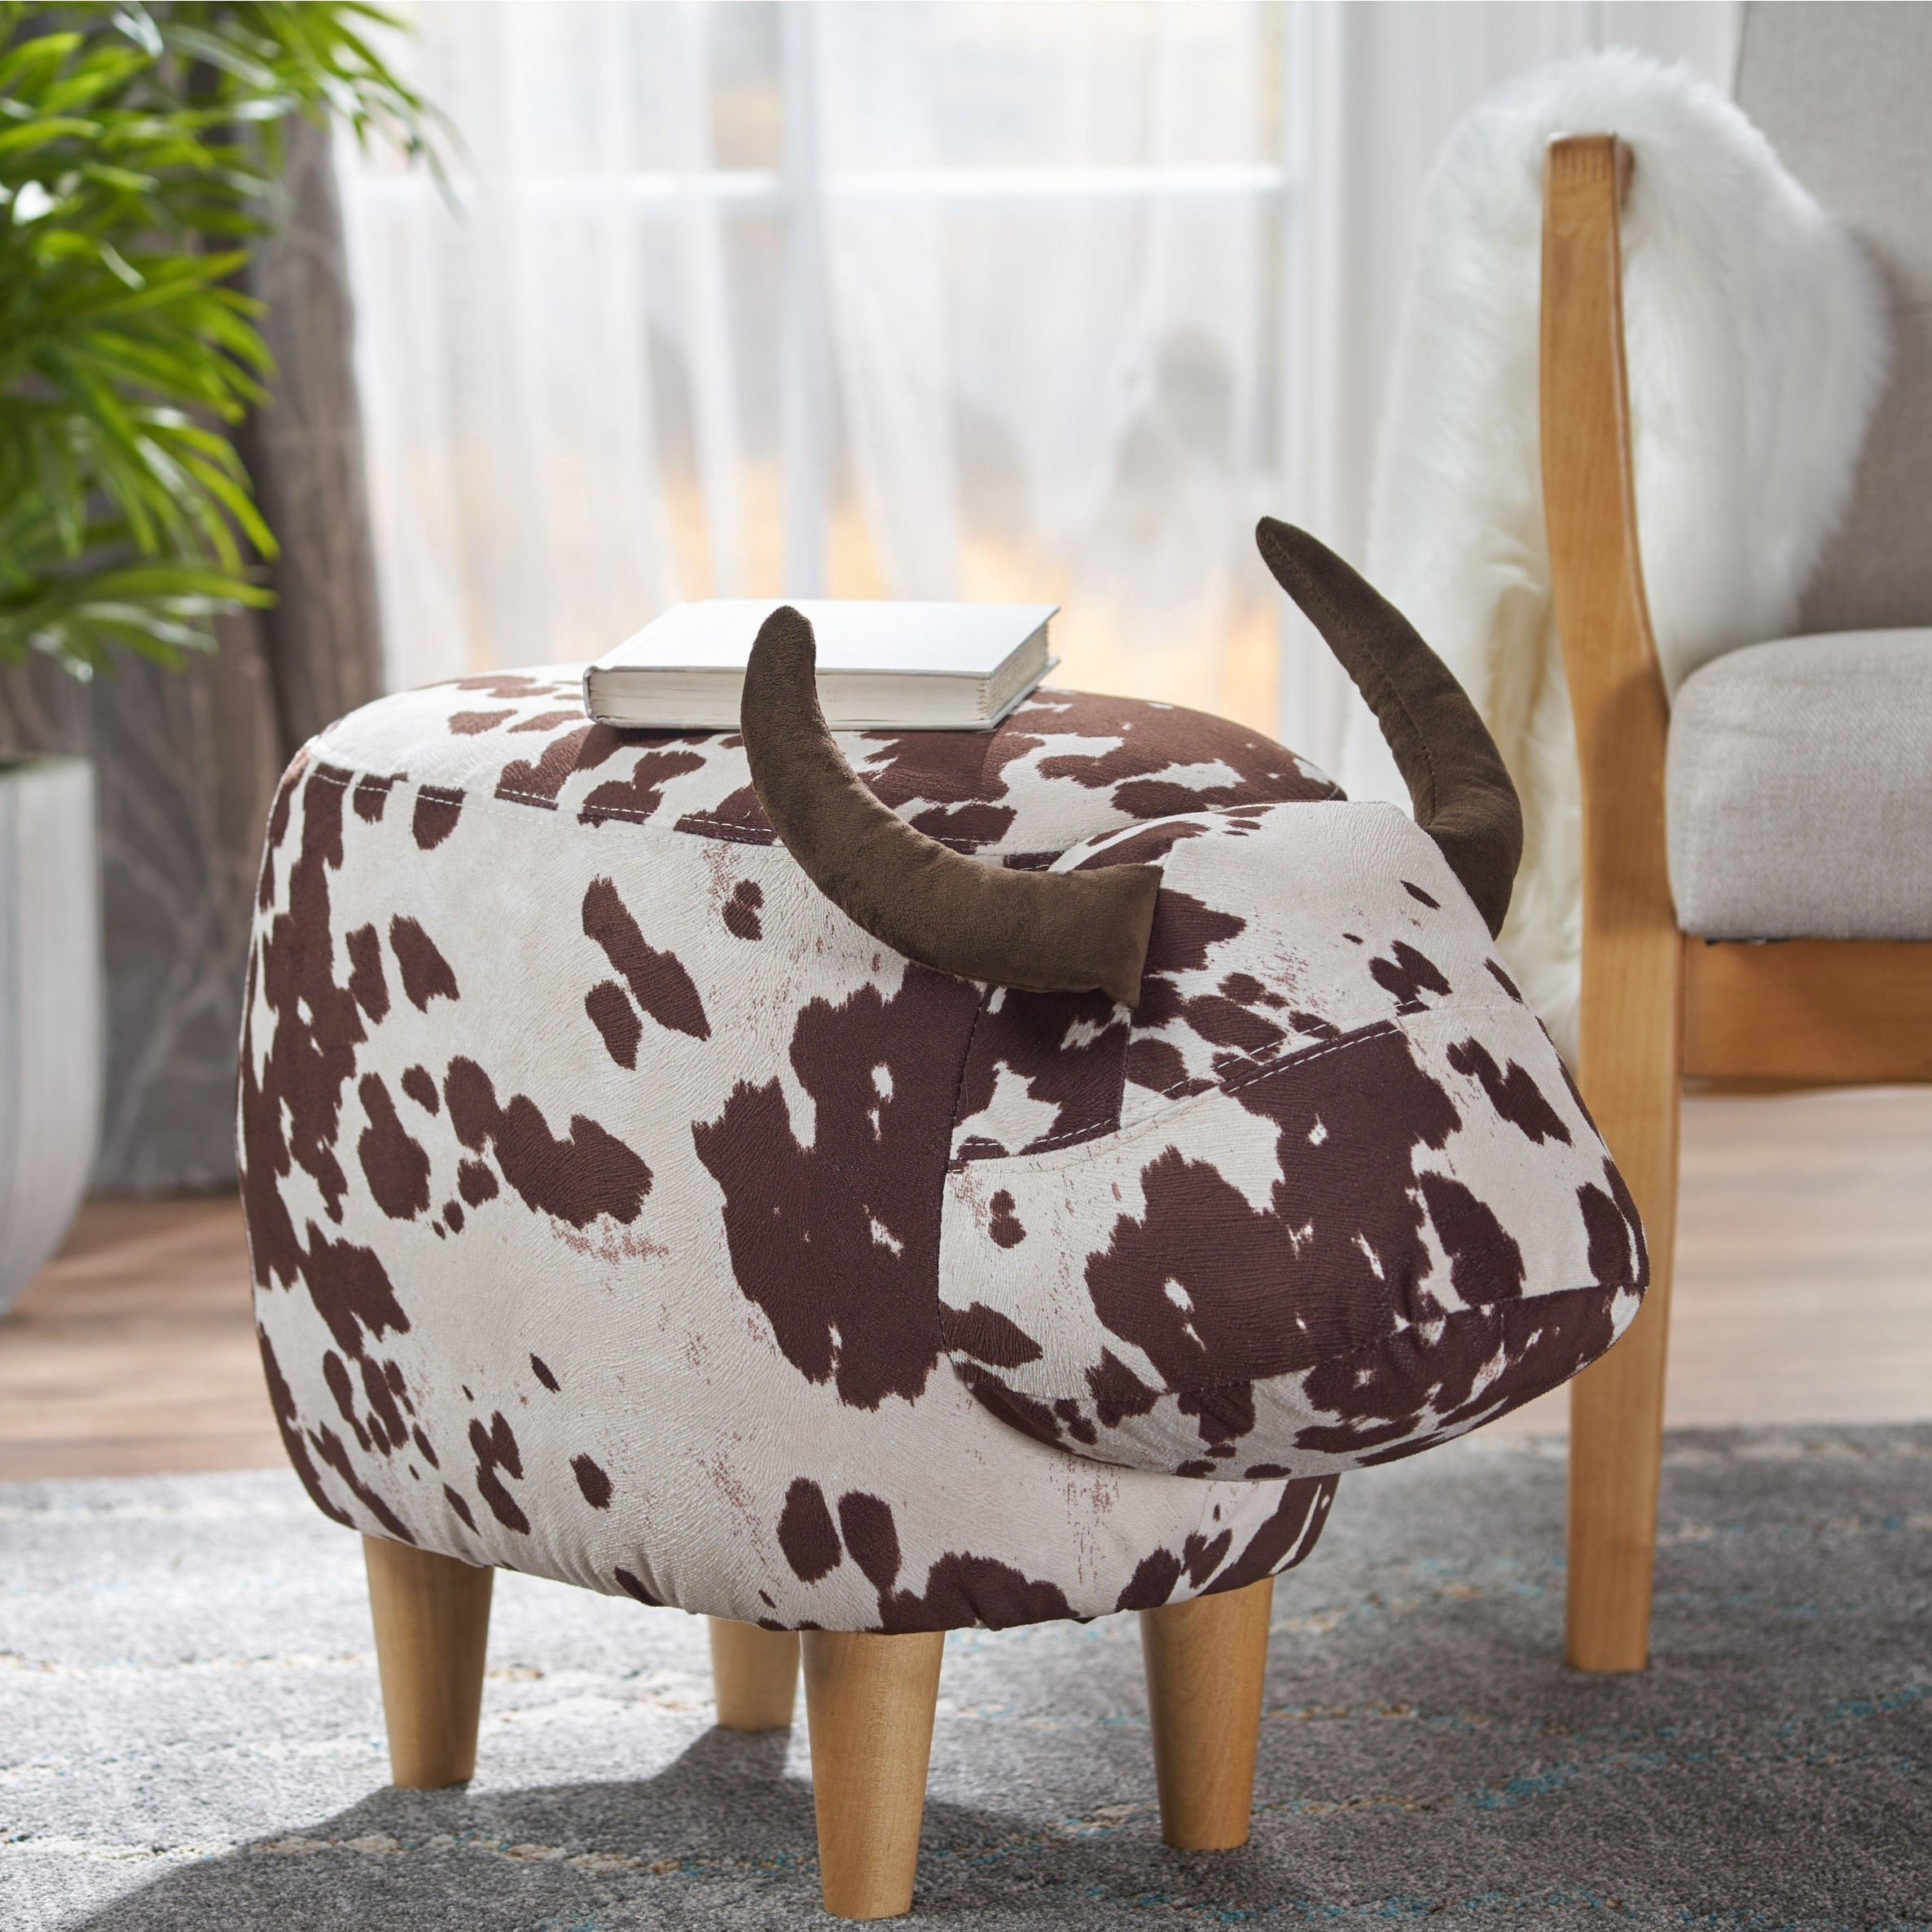 Astonishing Bessie Fabric Cow Patterned Ottoman By Christopher Knight Home Dailytribune Chair Design For Home Dailytribuneorg